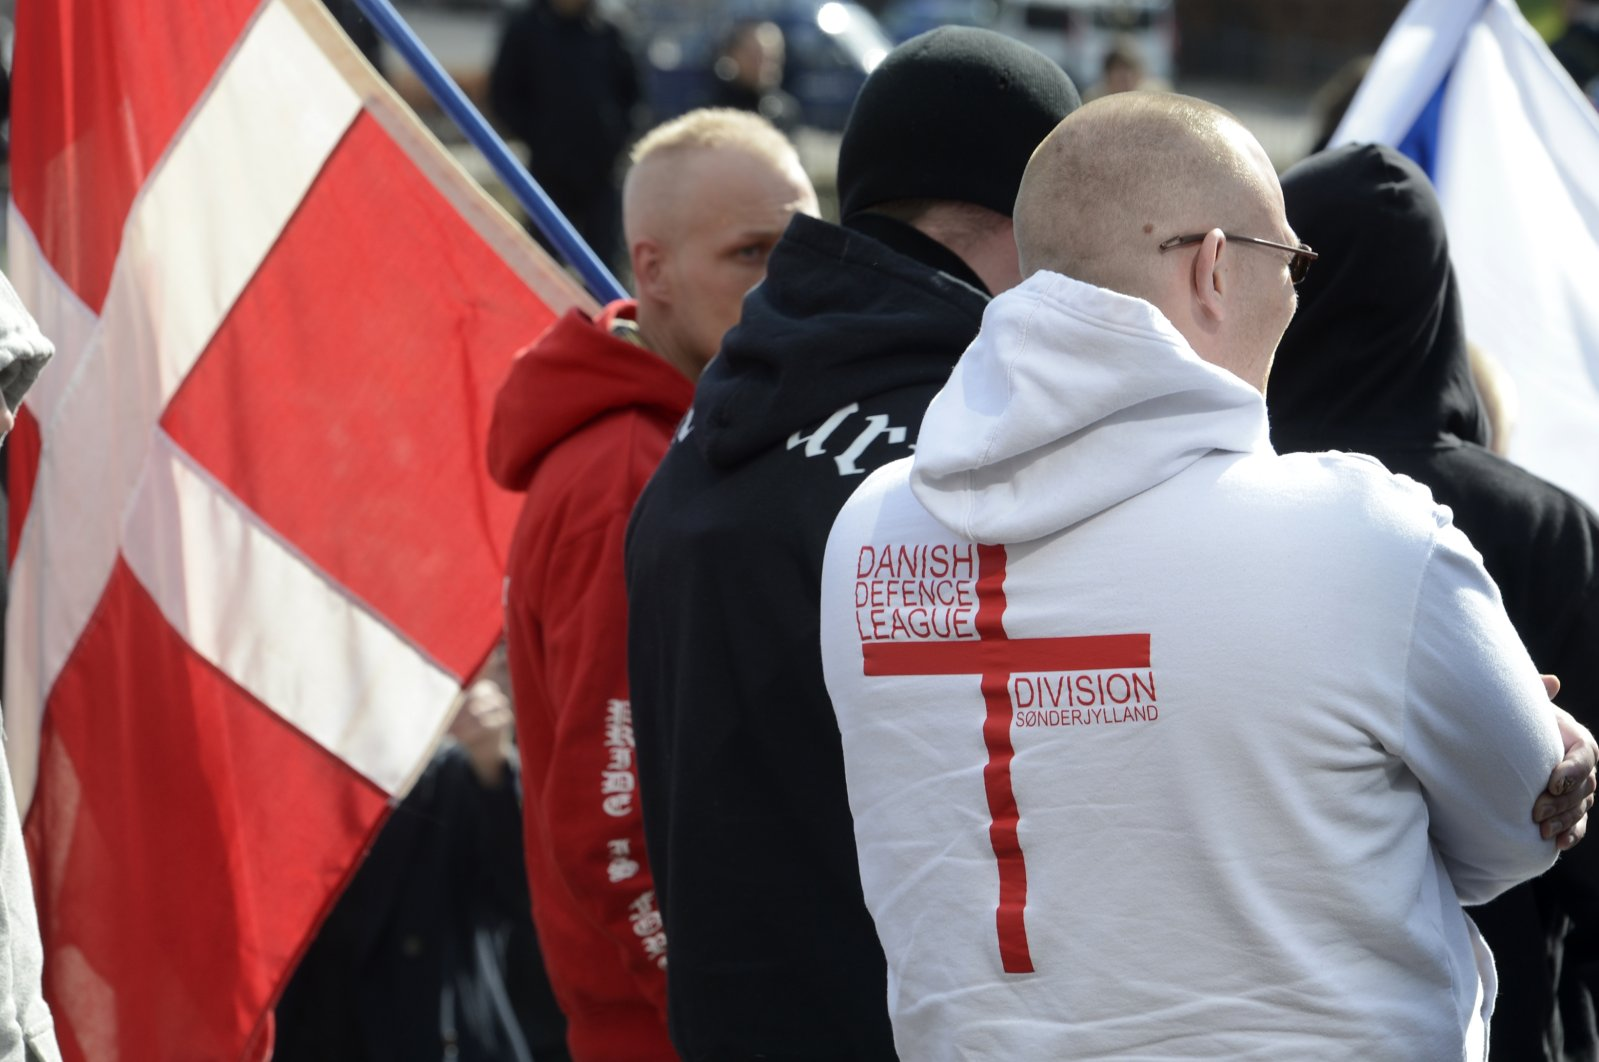 Members of the extremist Danish Defence League gather during a demonstration of right-wing protestors in Aarhus, March 31, 2012. (Reuters Photo)